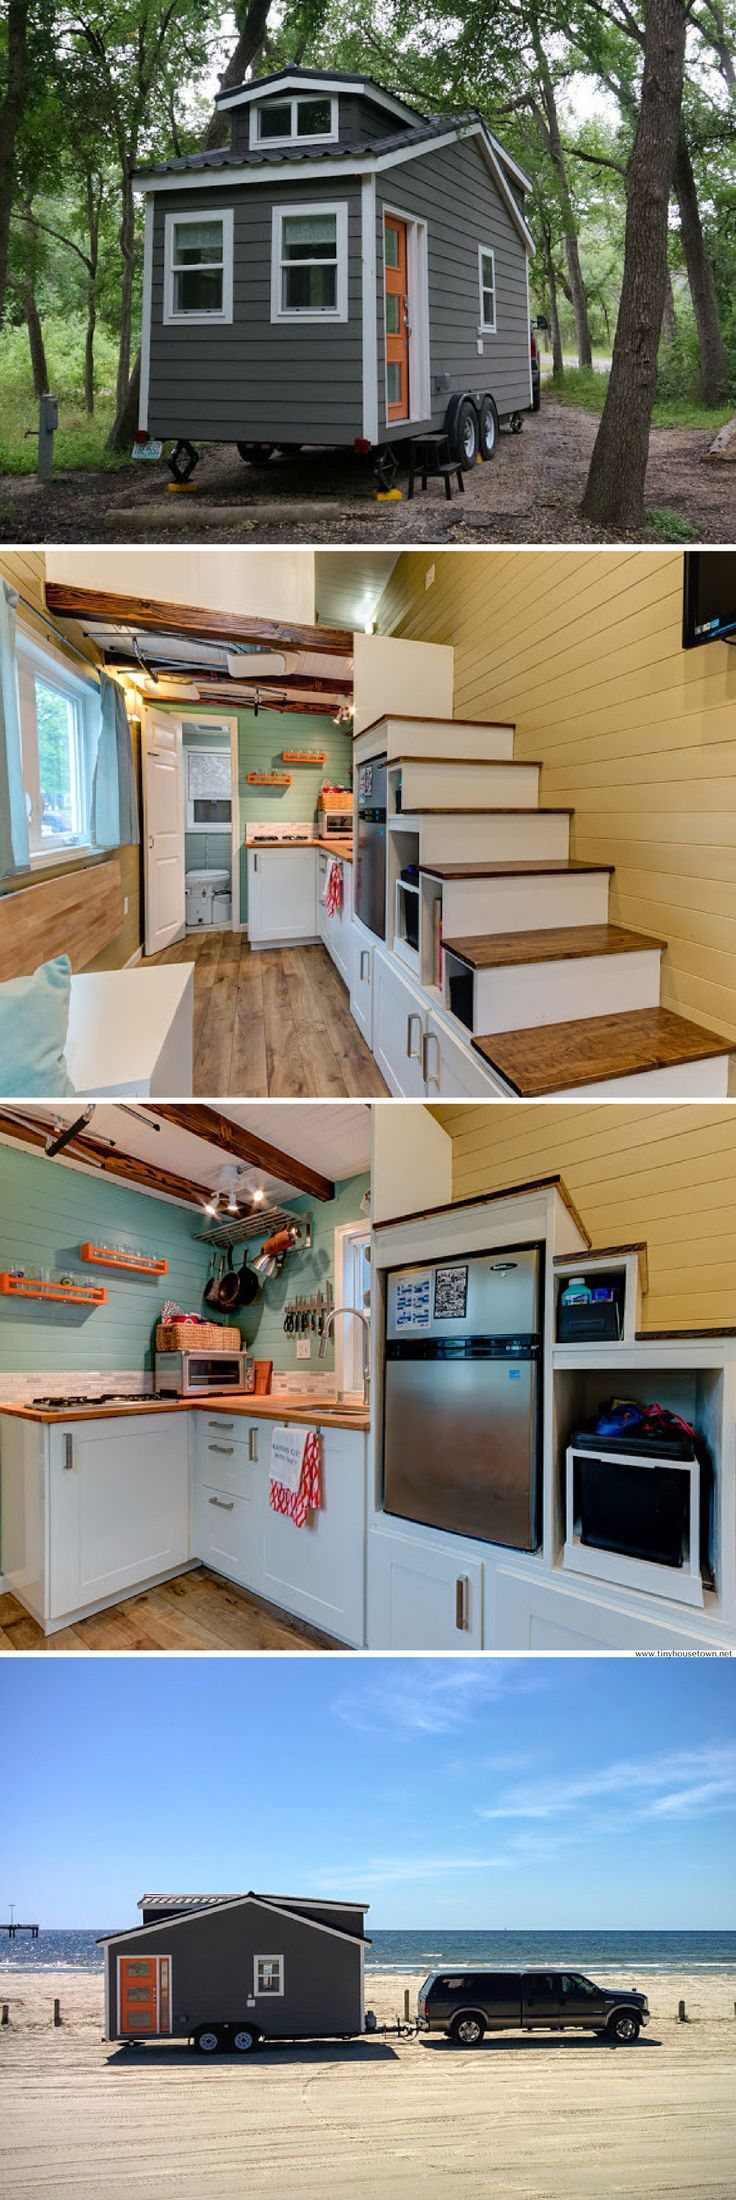 The Wanderlust tiny house (170 sq ft)